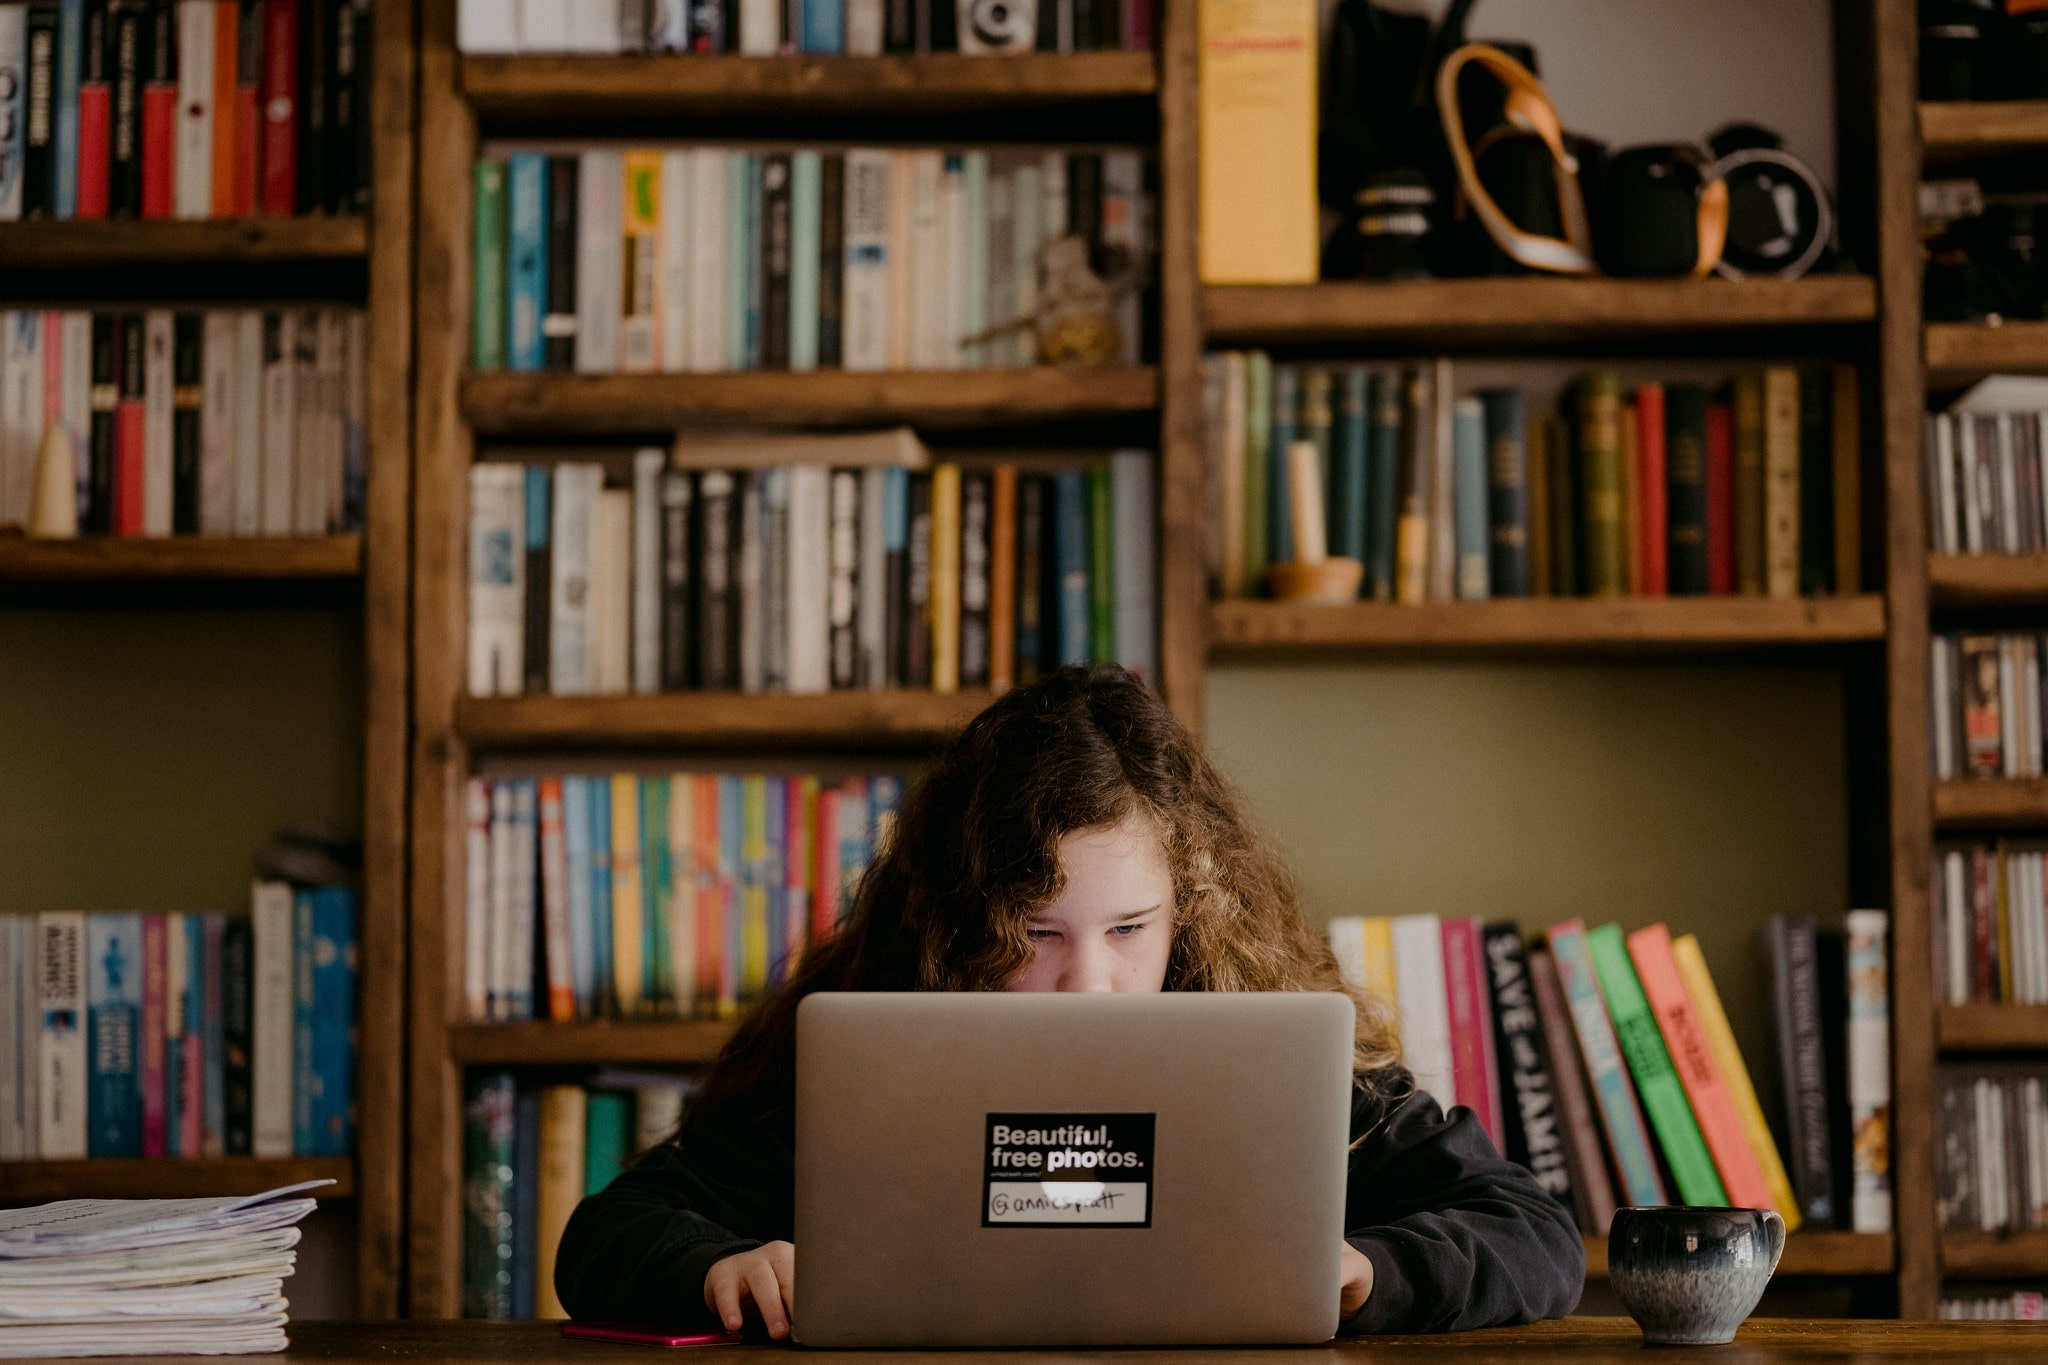 young girl at laptop surrounded by bookshelves